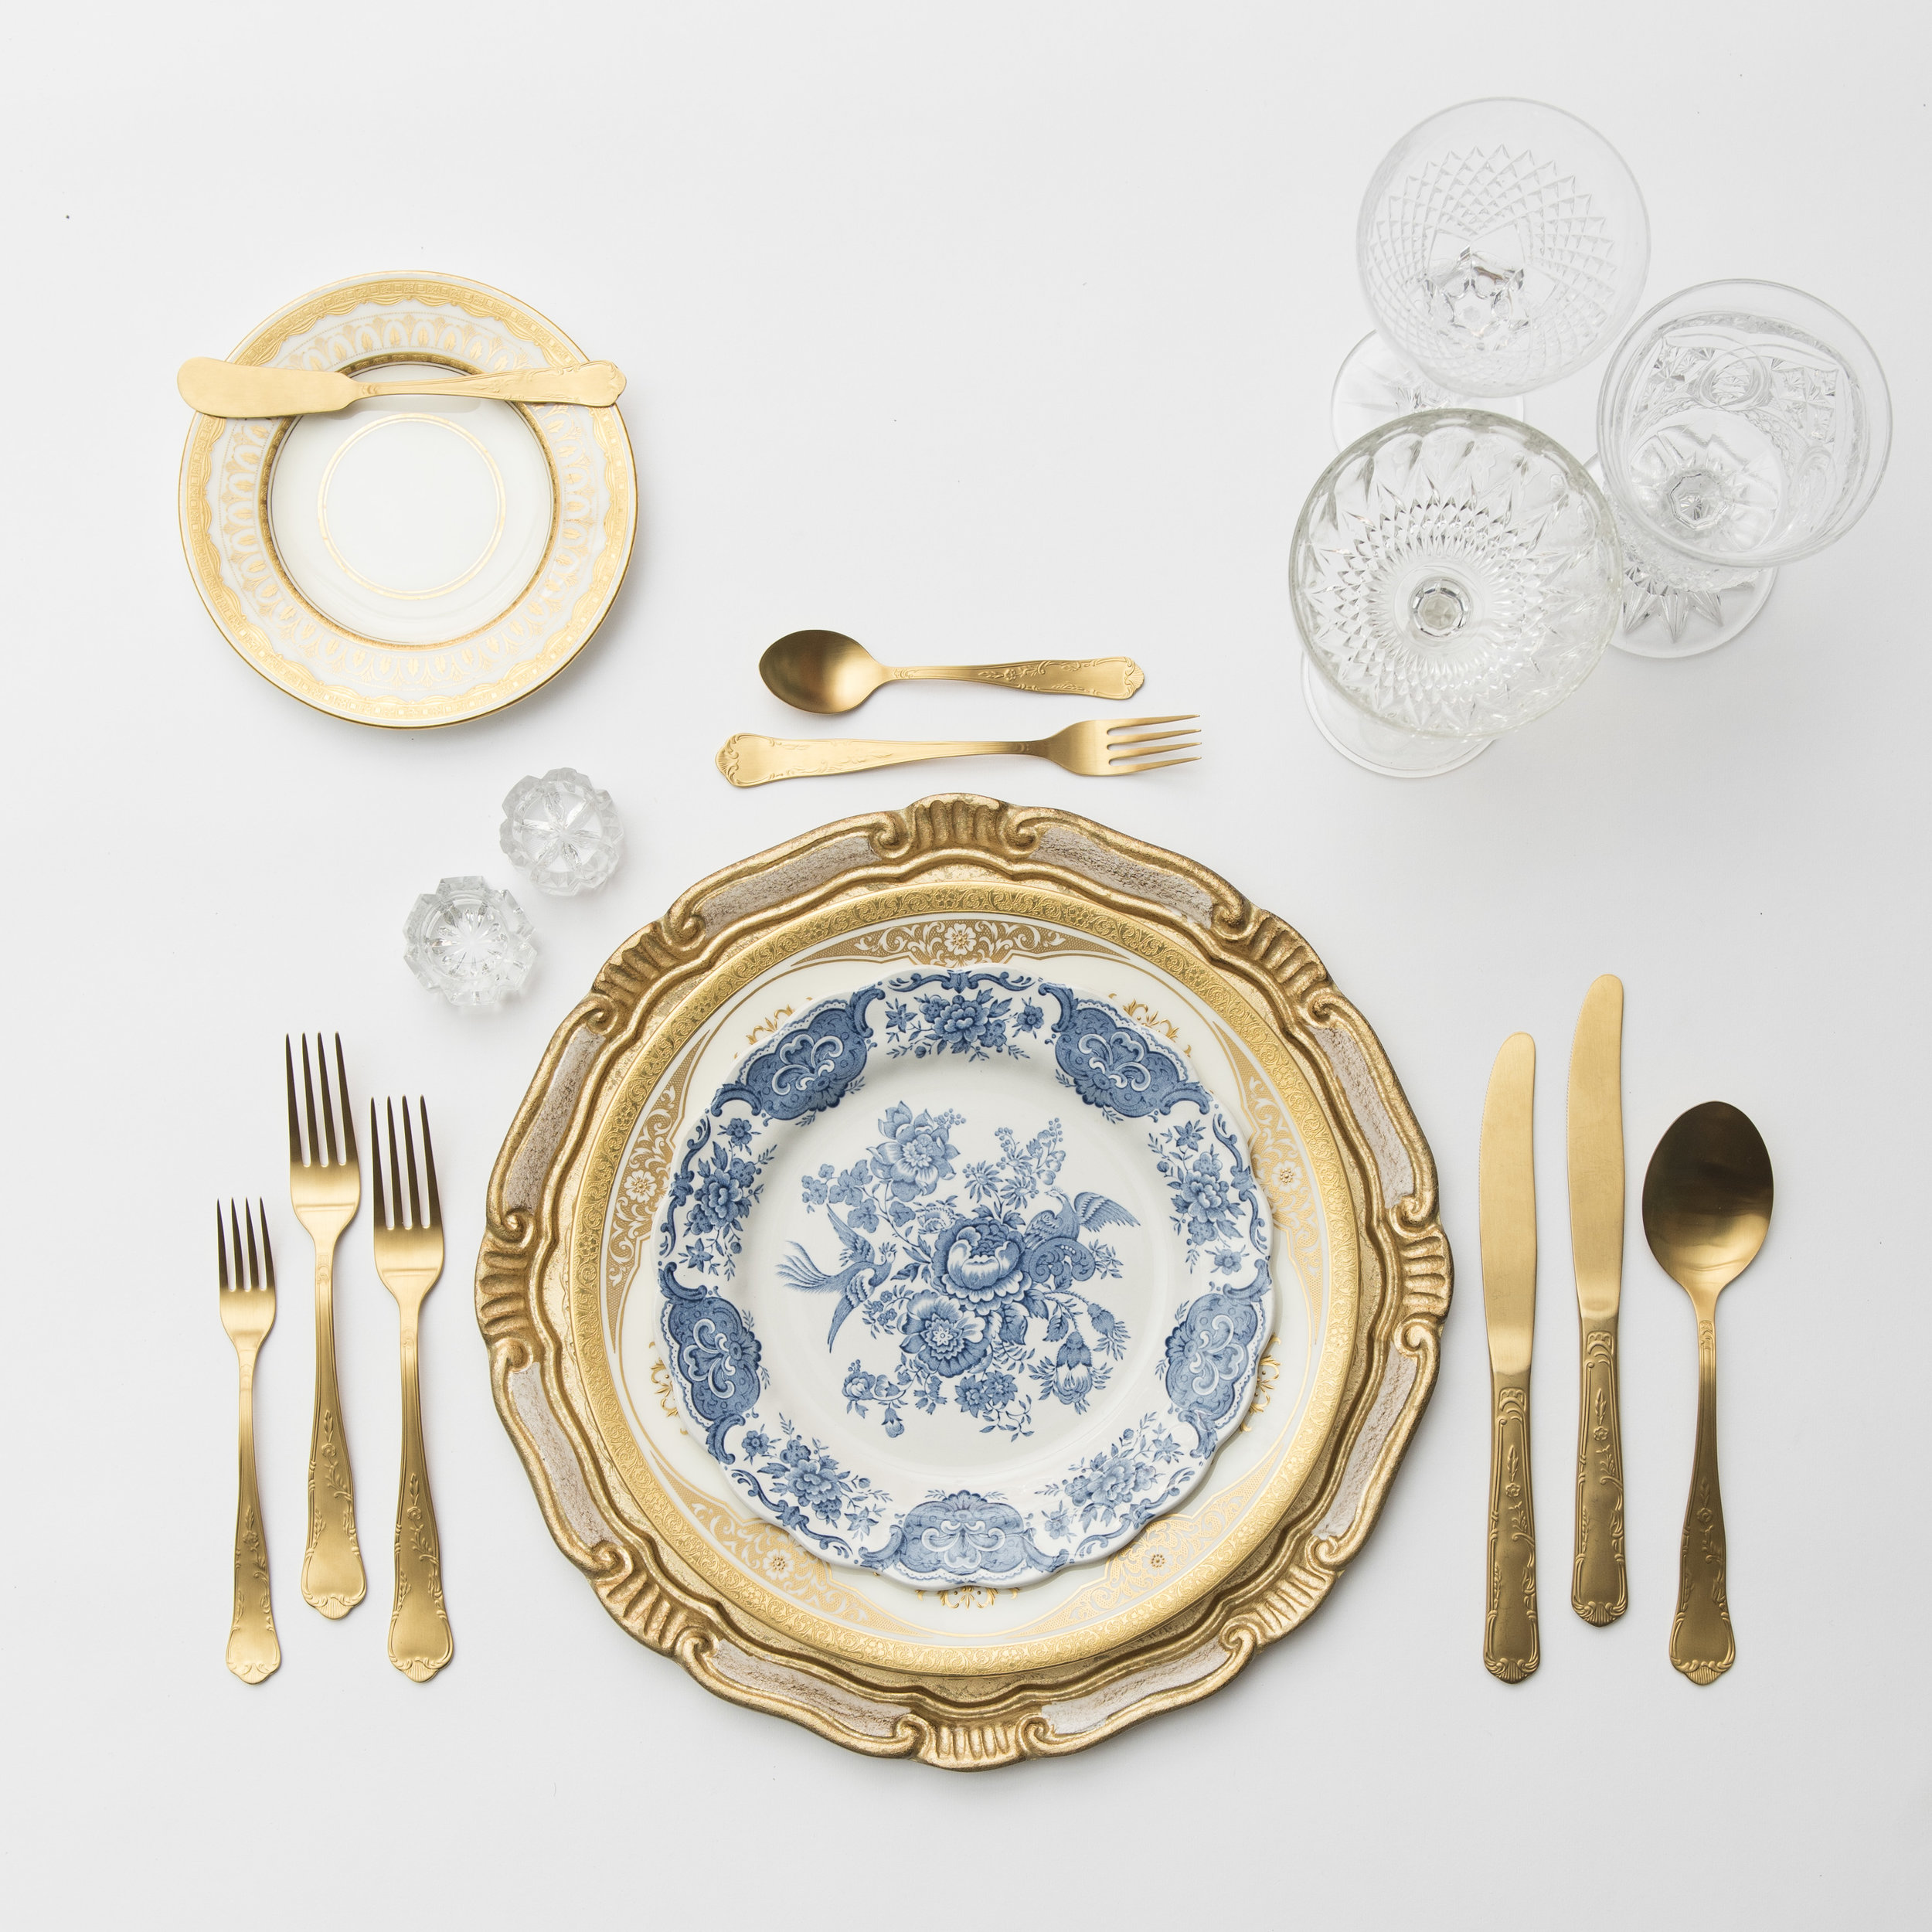 RENT: Florentine Chargers in White/Gold + Crown Gold Collection Vintage China + Blue Garden Collection Vintage China + Chateau Flatware in Matte Gold + Vintage Cut Crystal Goblets + Early American Pressed Glass Goblets + Vintage Champagne Coupes + Antique Crystal Salt Cellars   SHOP: Florentine Chargers in White/Gold